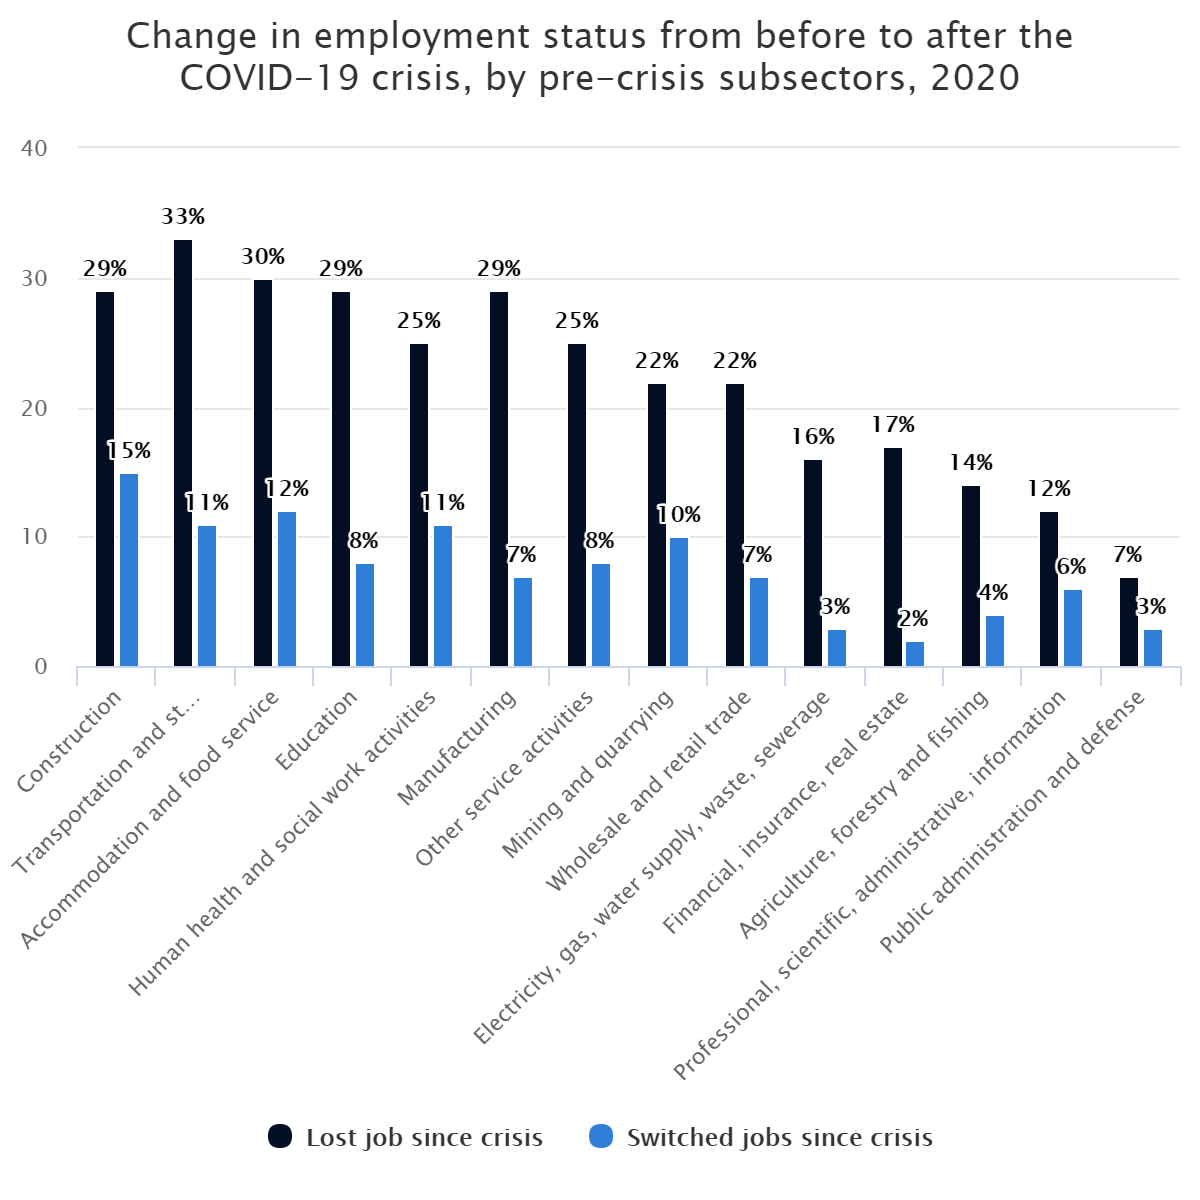 Change in employment status from before to after the COVID-19 crisis, by pre-crisis subsectors, 2020